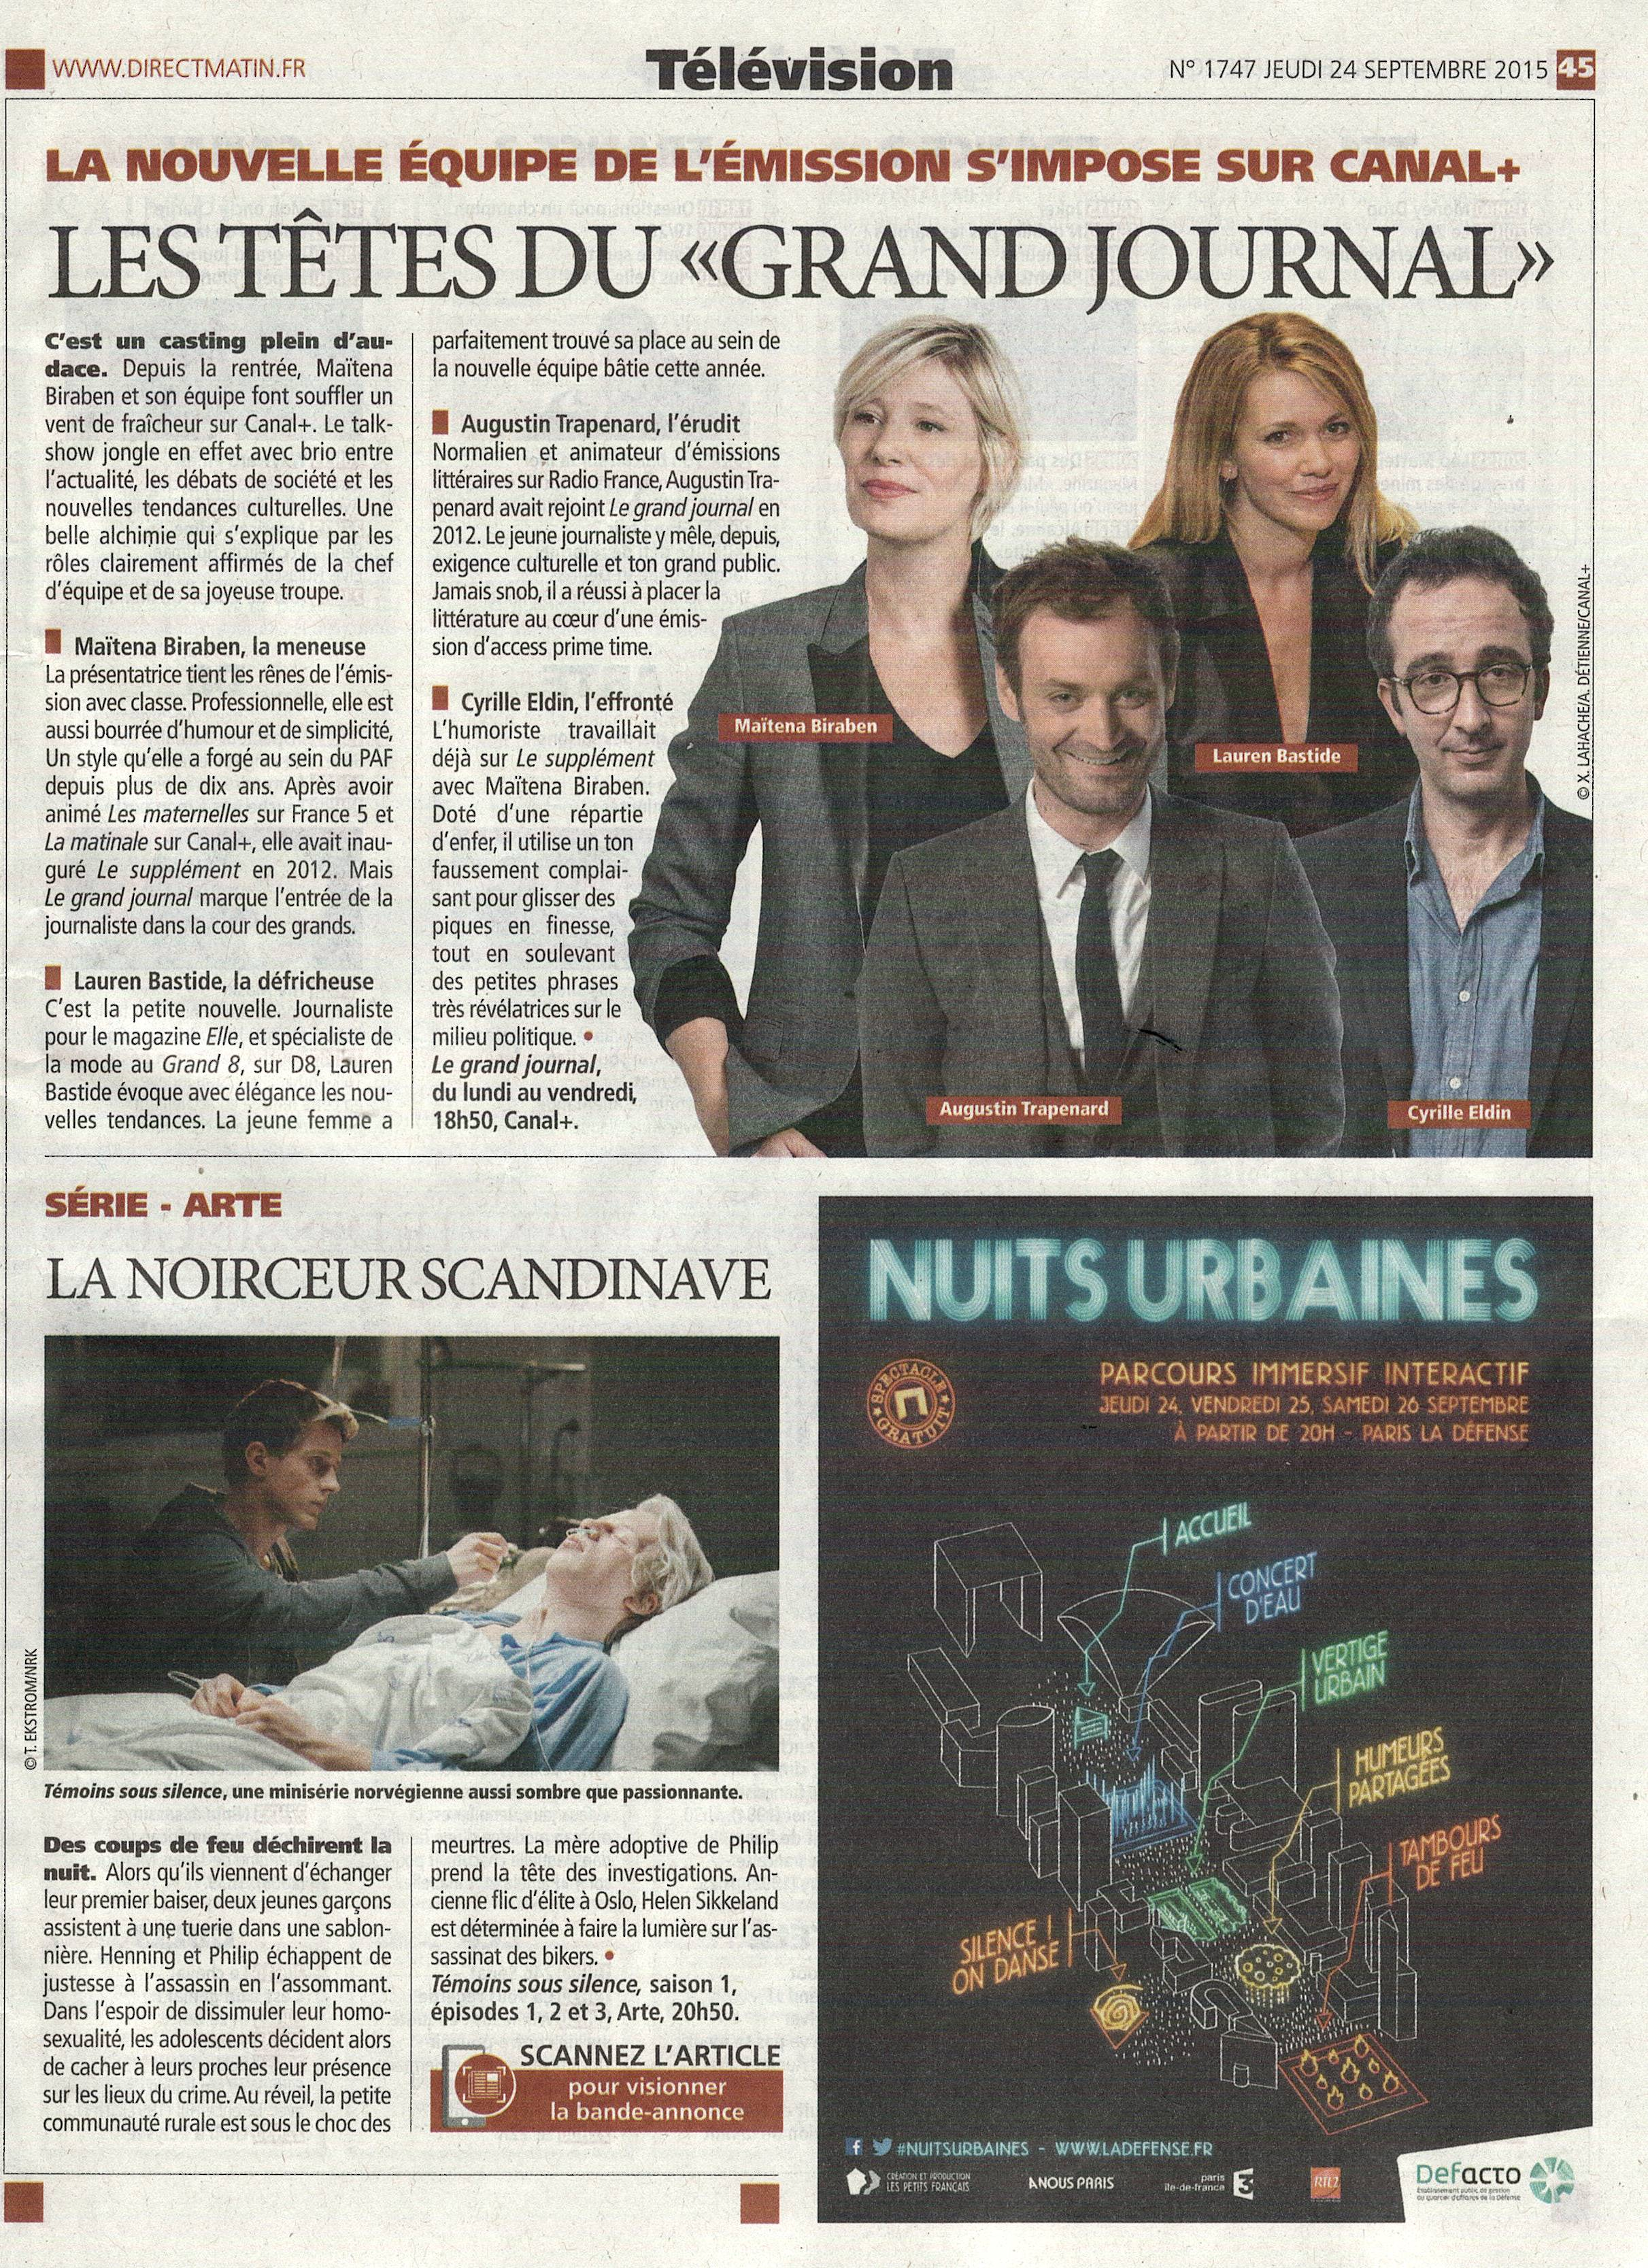 Article Direct Matin - Grand journal s'impose